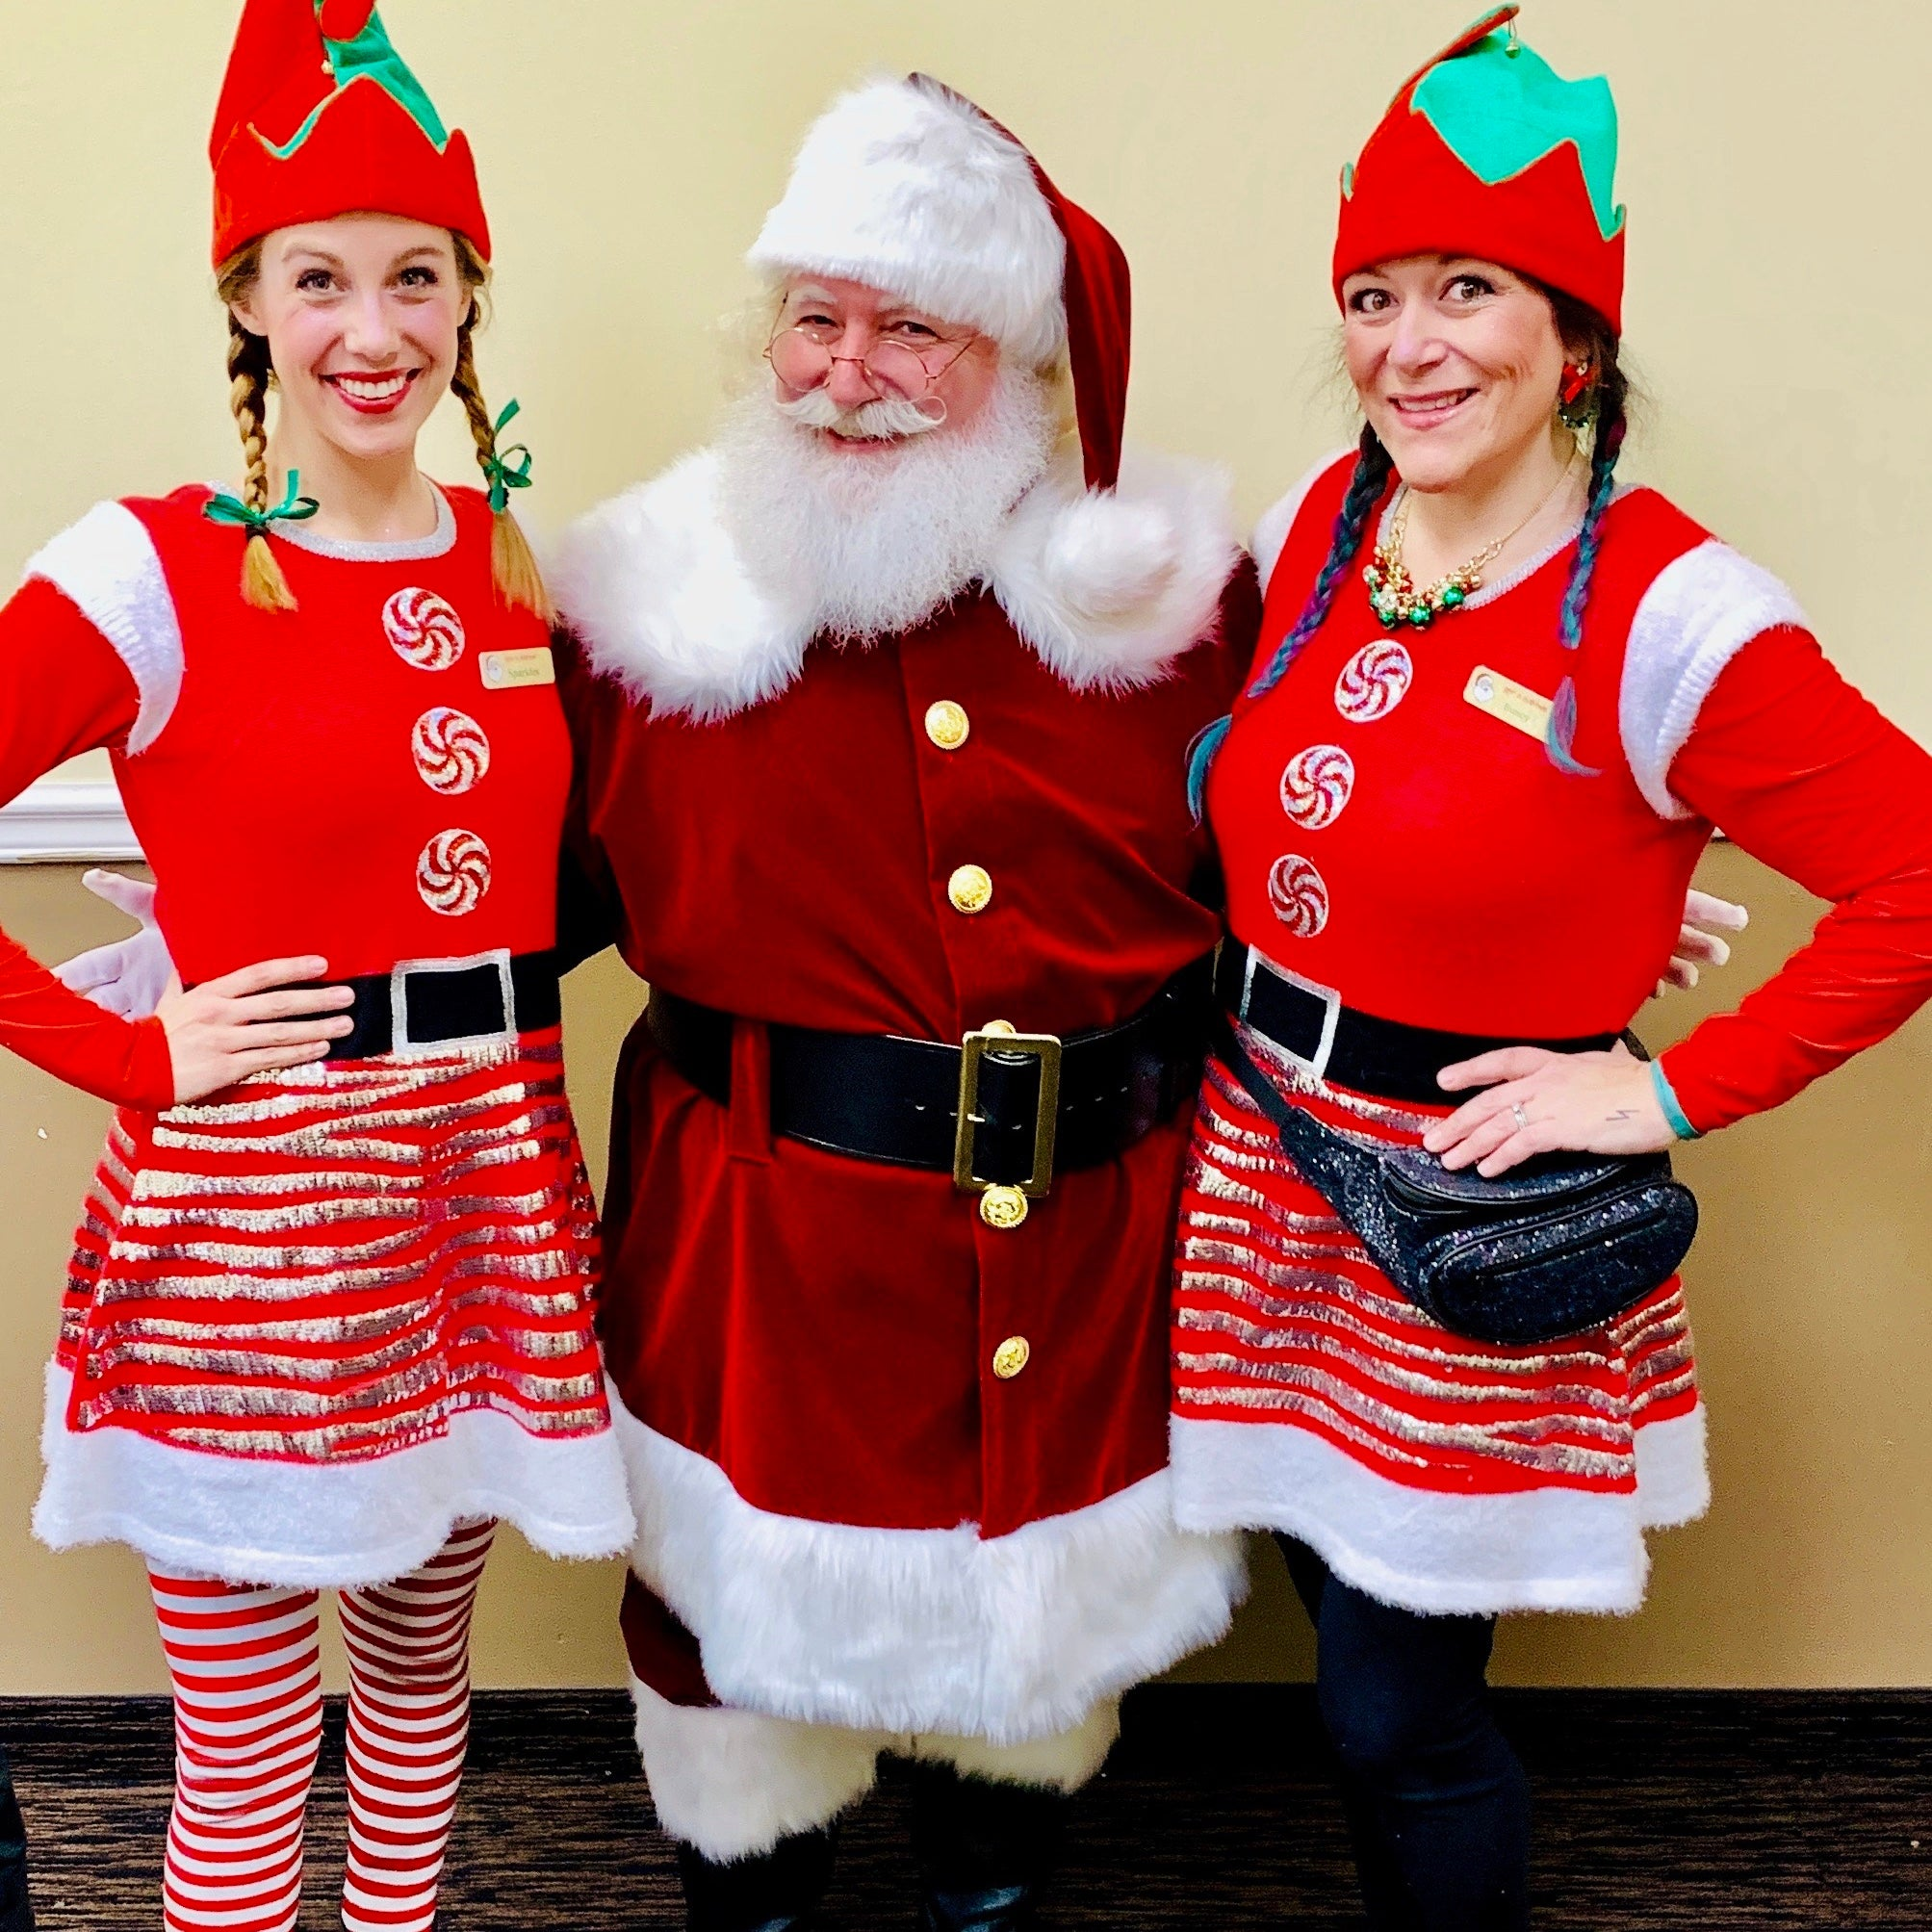 Two Rent-A-Christmas Elves posing with Santa Claus